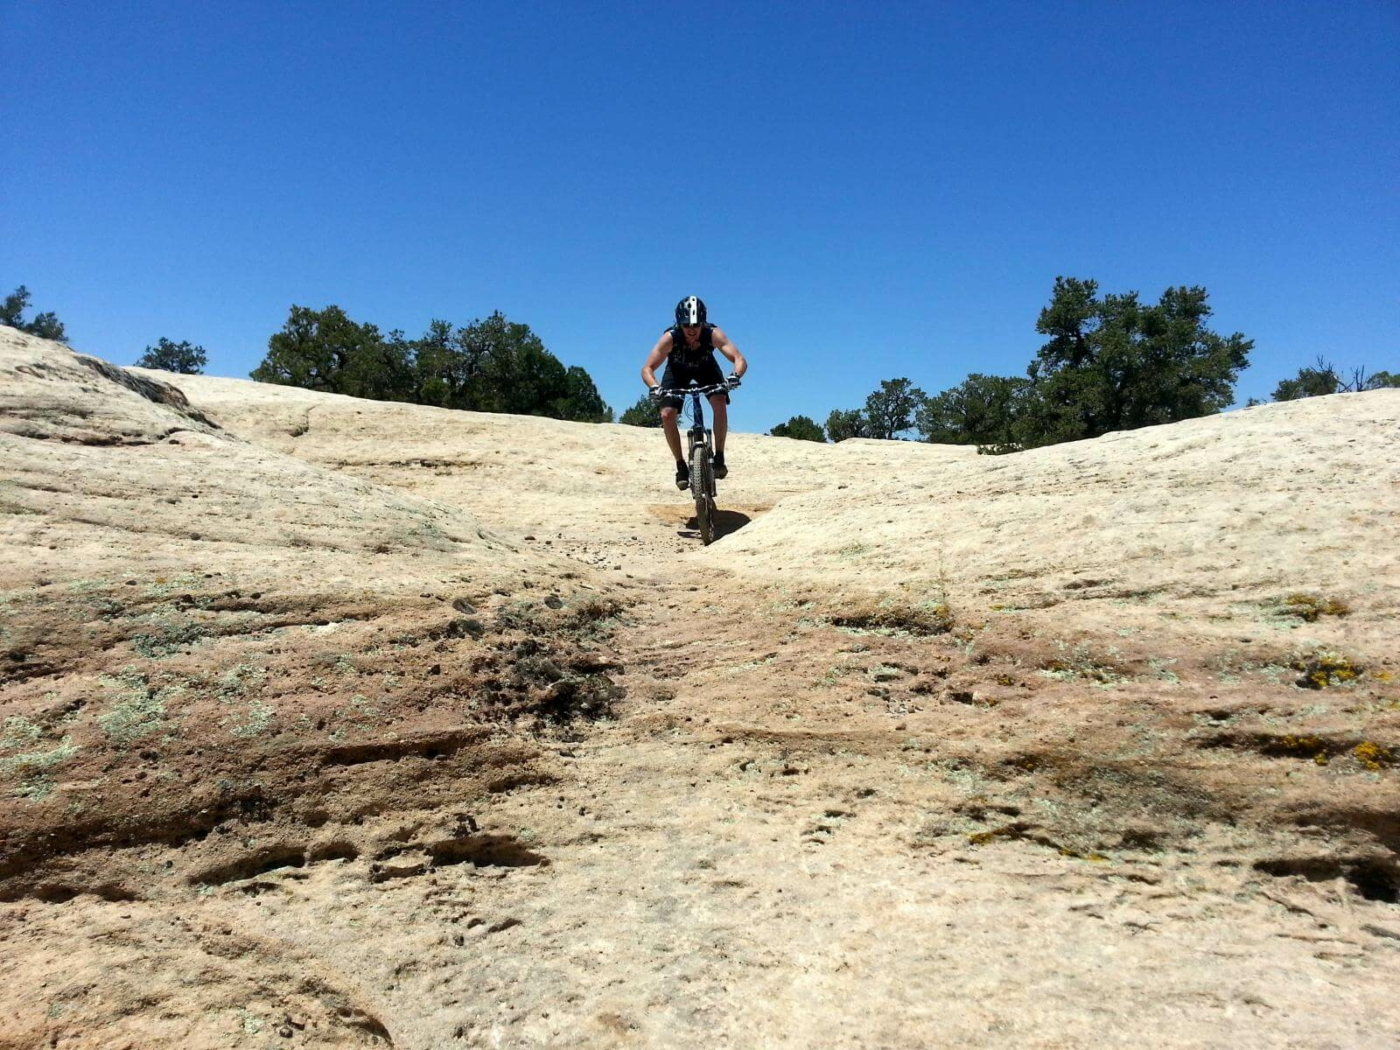 Mountain biker coming down a sandstone hill in Utah with bright blue sky overhead